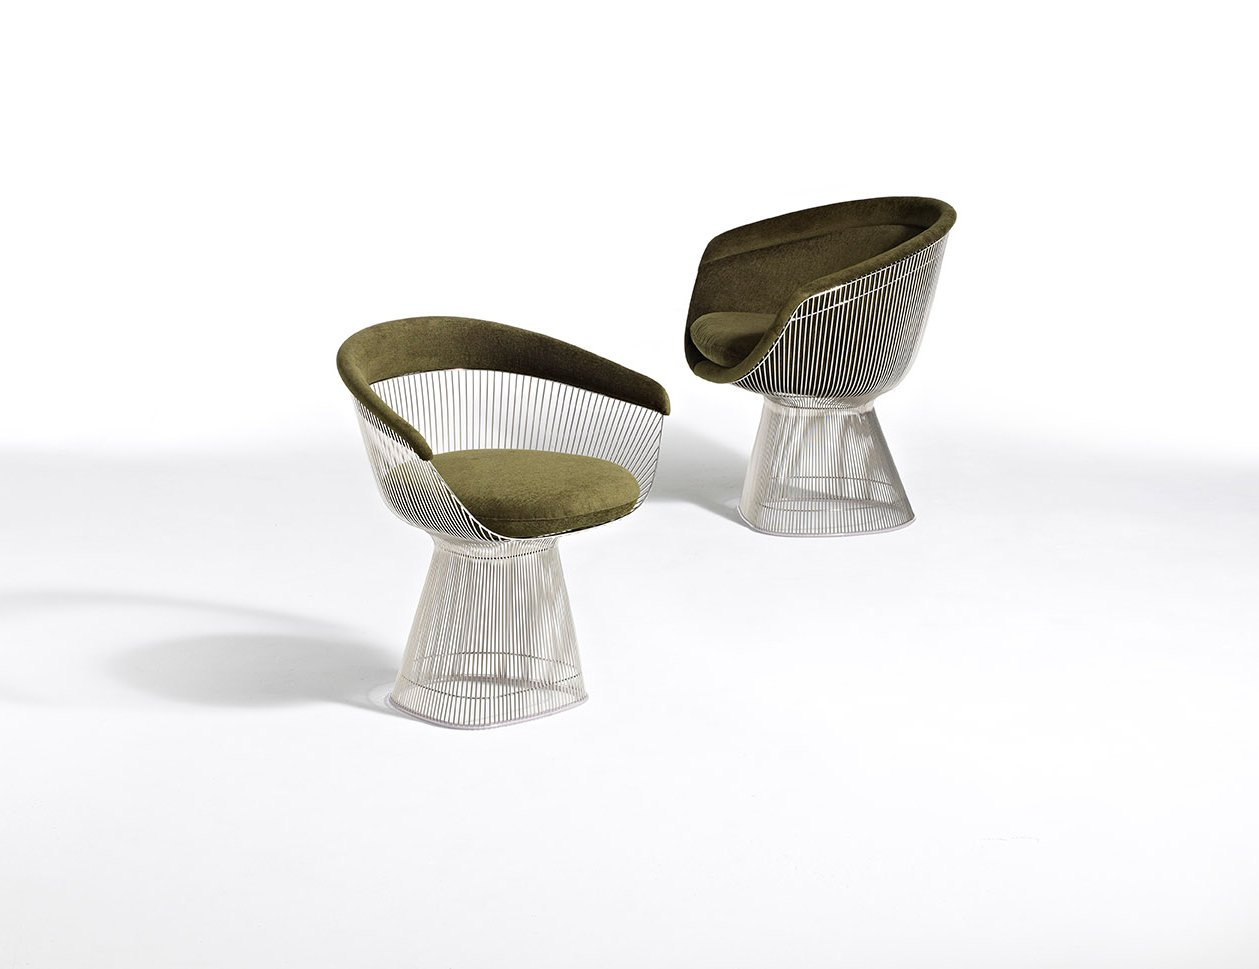 ... Warren Platner Collection Platner Lounge Chair Platner Arm Chair ...